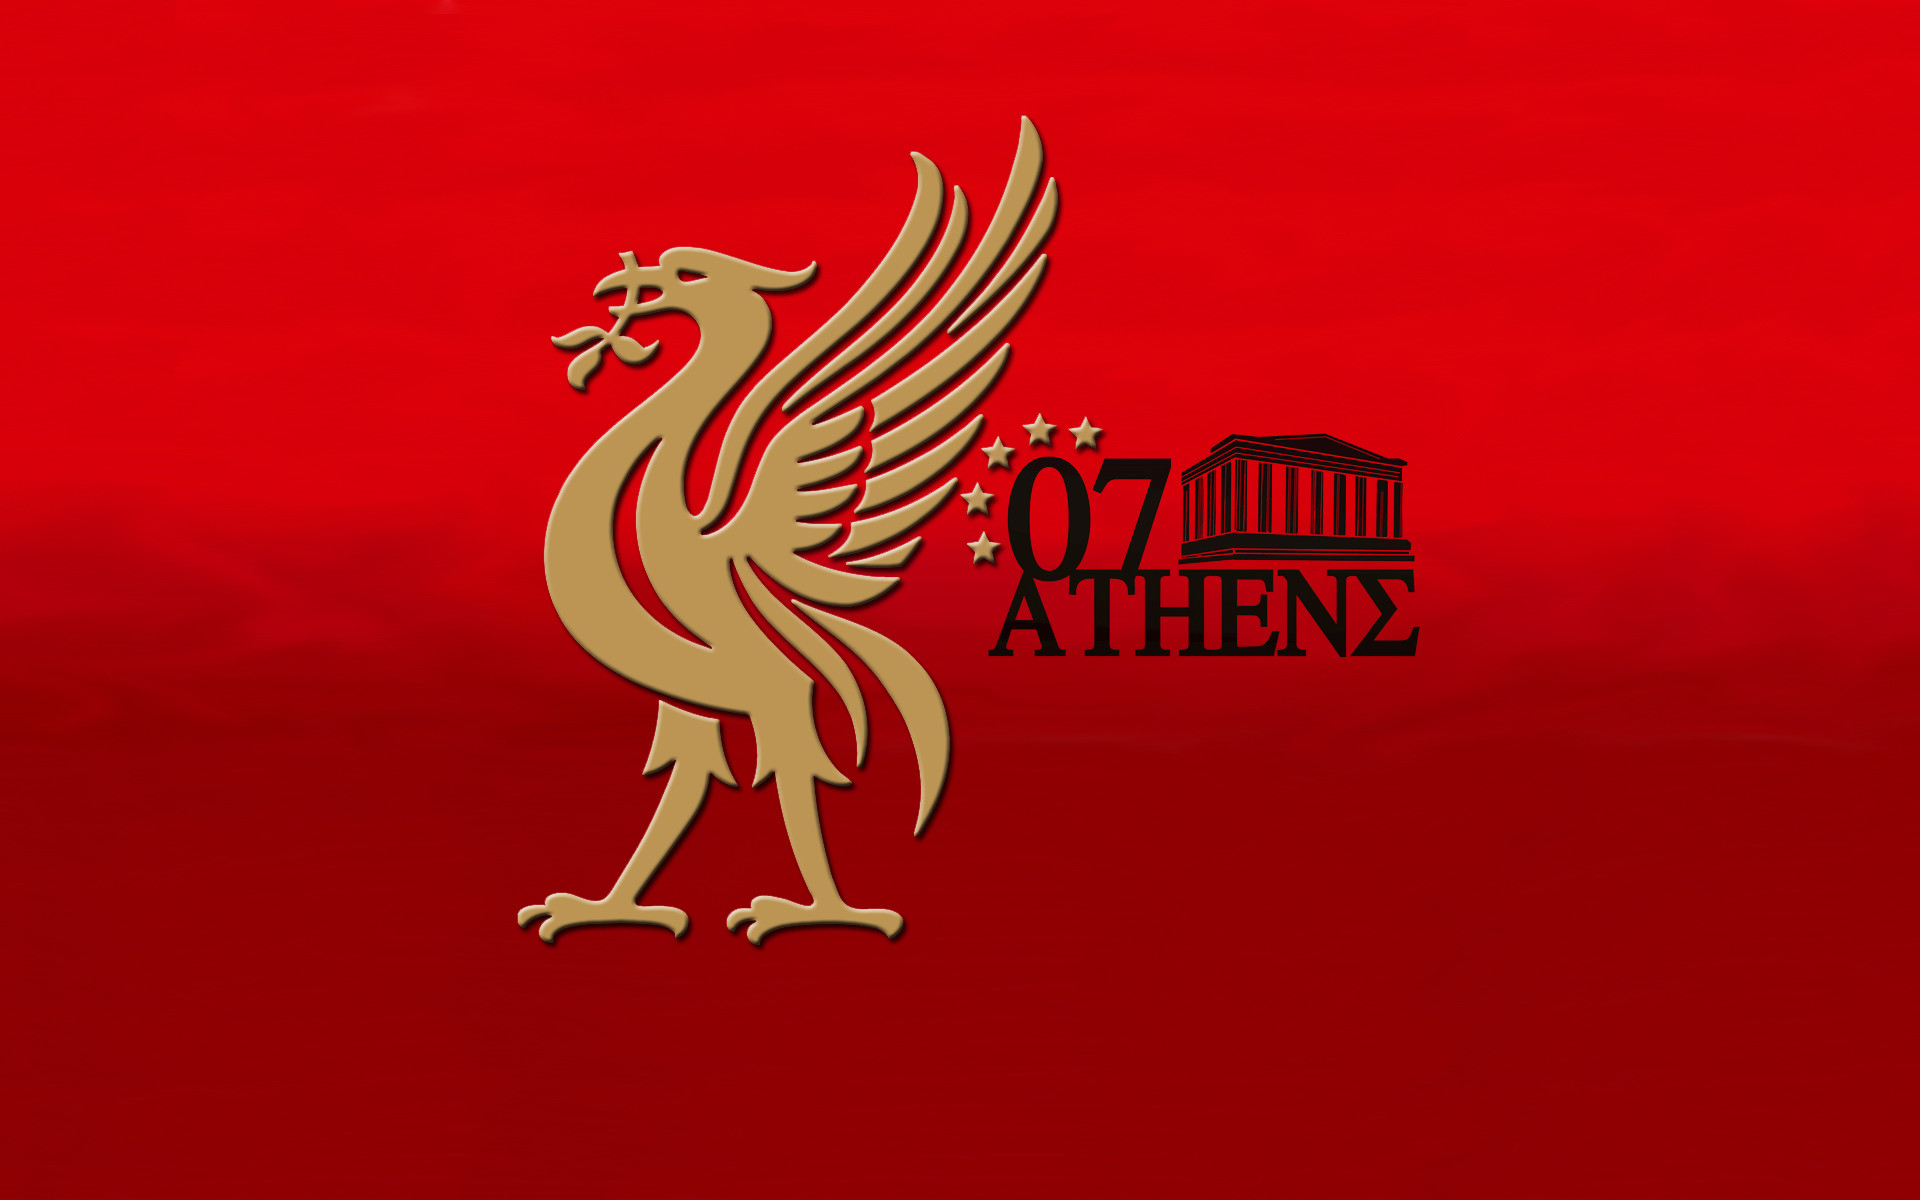 Anfield wallpapers 70 images 1920x1200 lfc athens 07 large wallpaper voltagebd Gallery